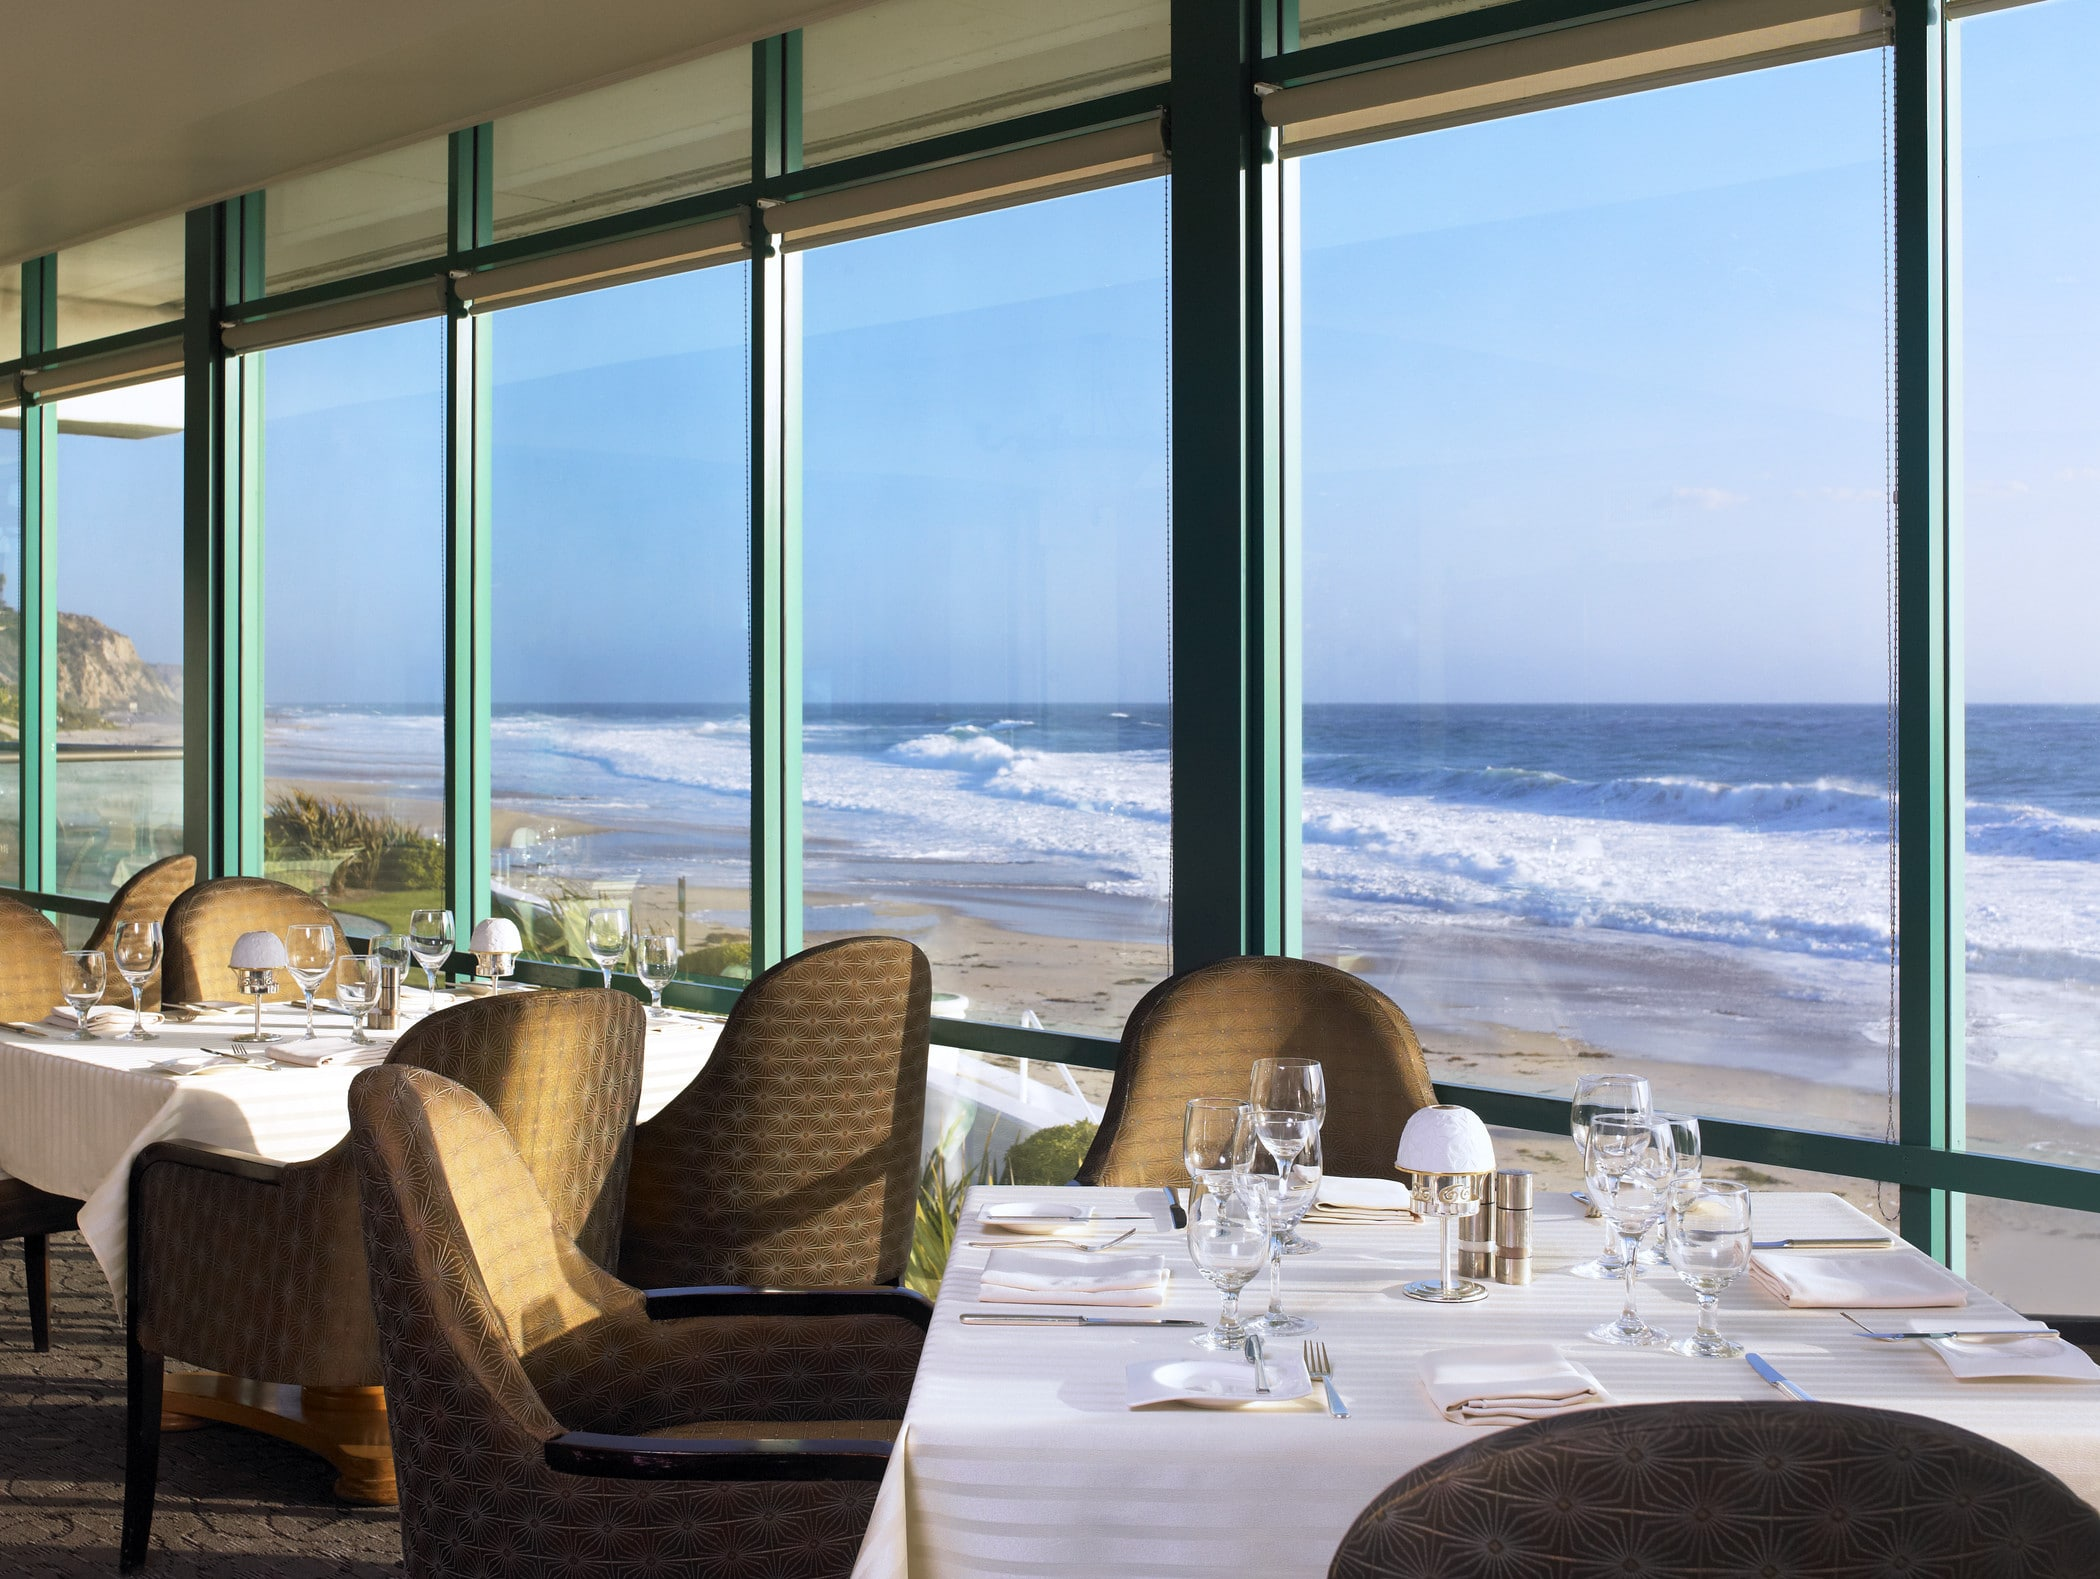 Floor-to-ceiling windows at Monarch Bay Club showcase the beachside location and ocean.